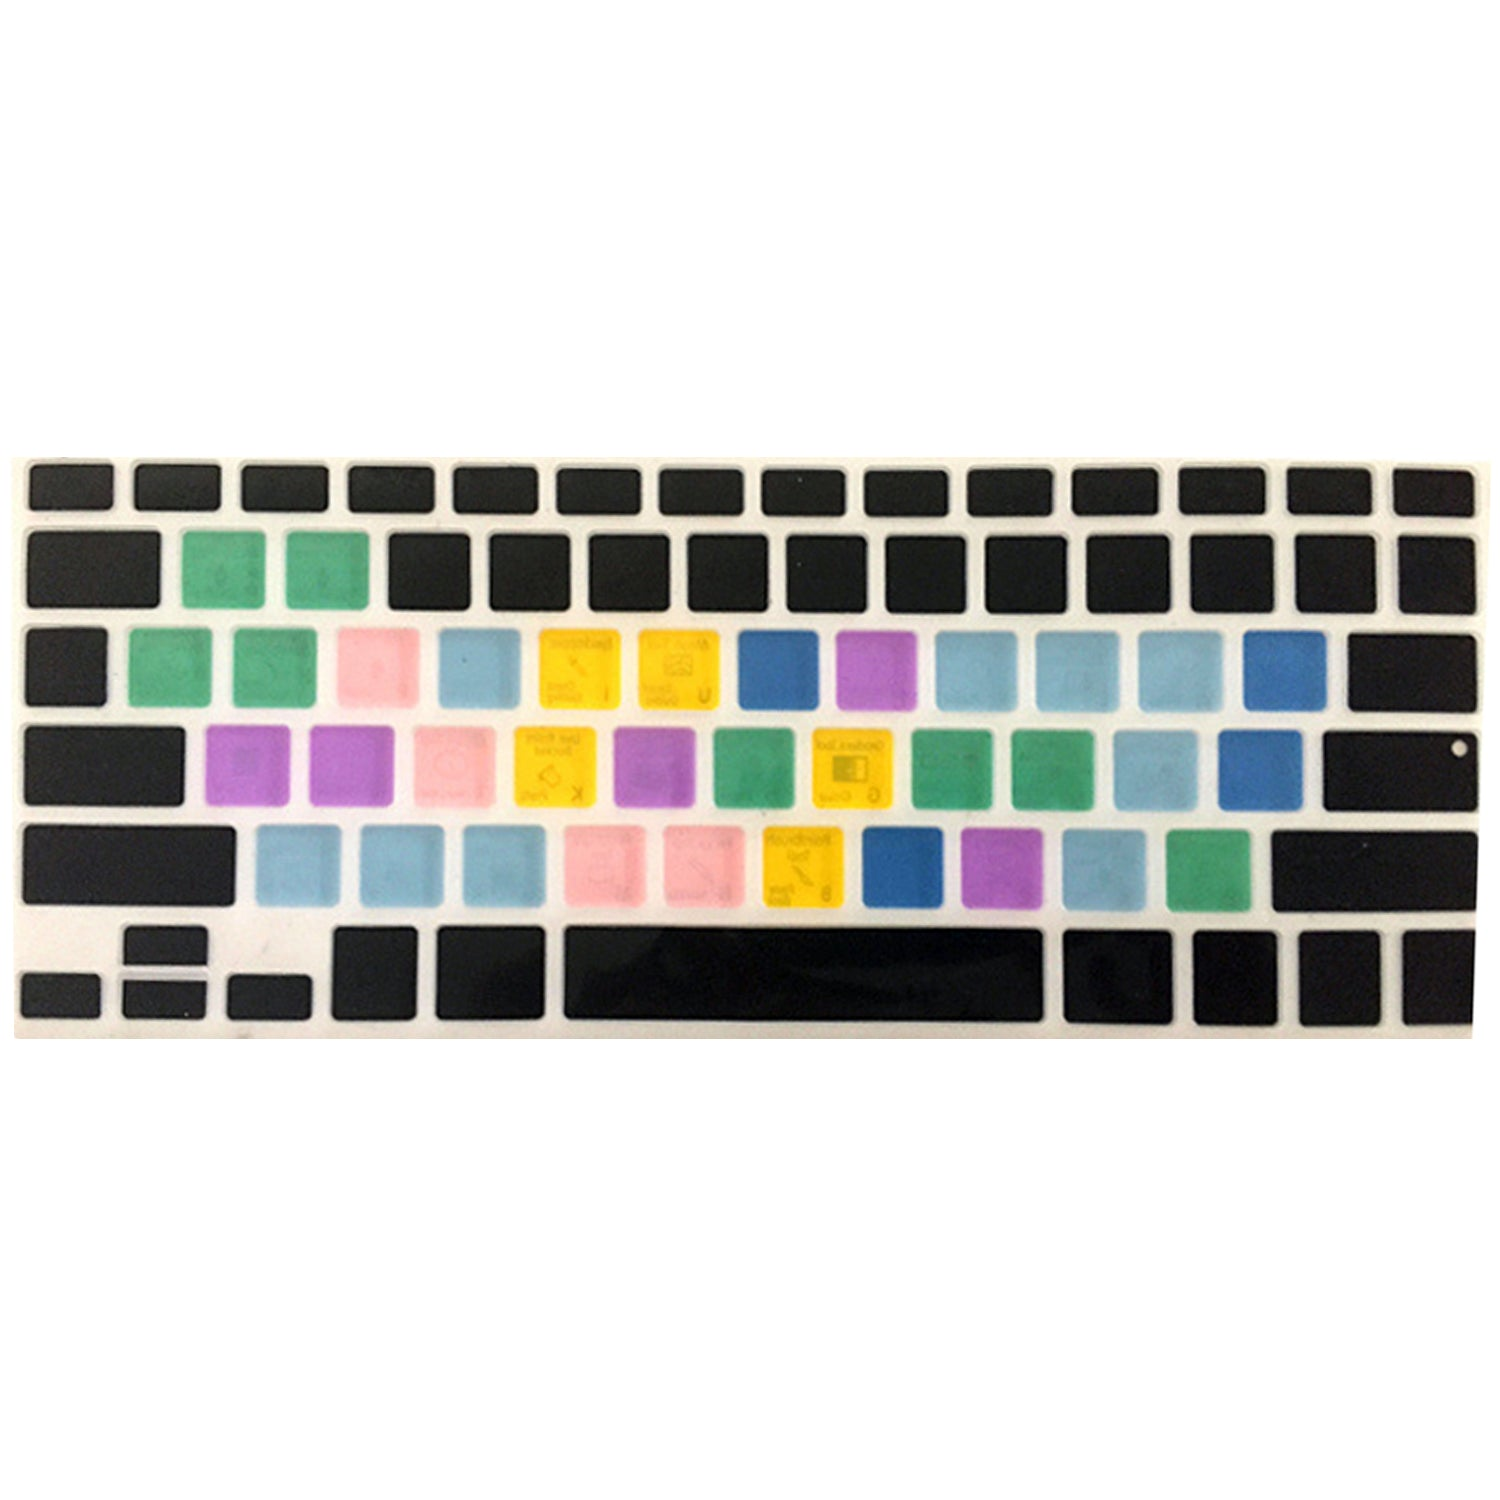 Adobe Photoshop Keyboard Shortcut Design Functional Silicone Cover For Macbook Pro Air 13 15 17 Protector Sticker PS Keyboard